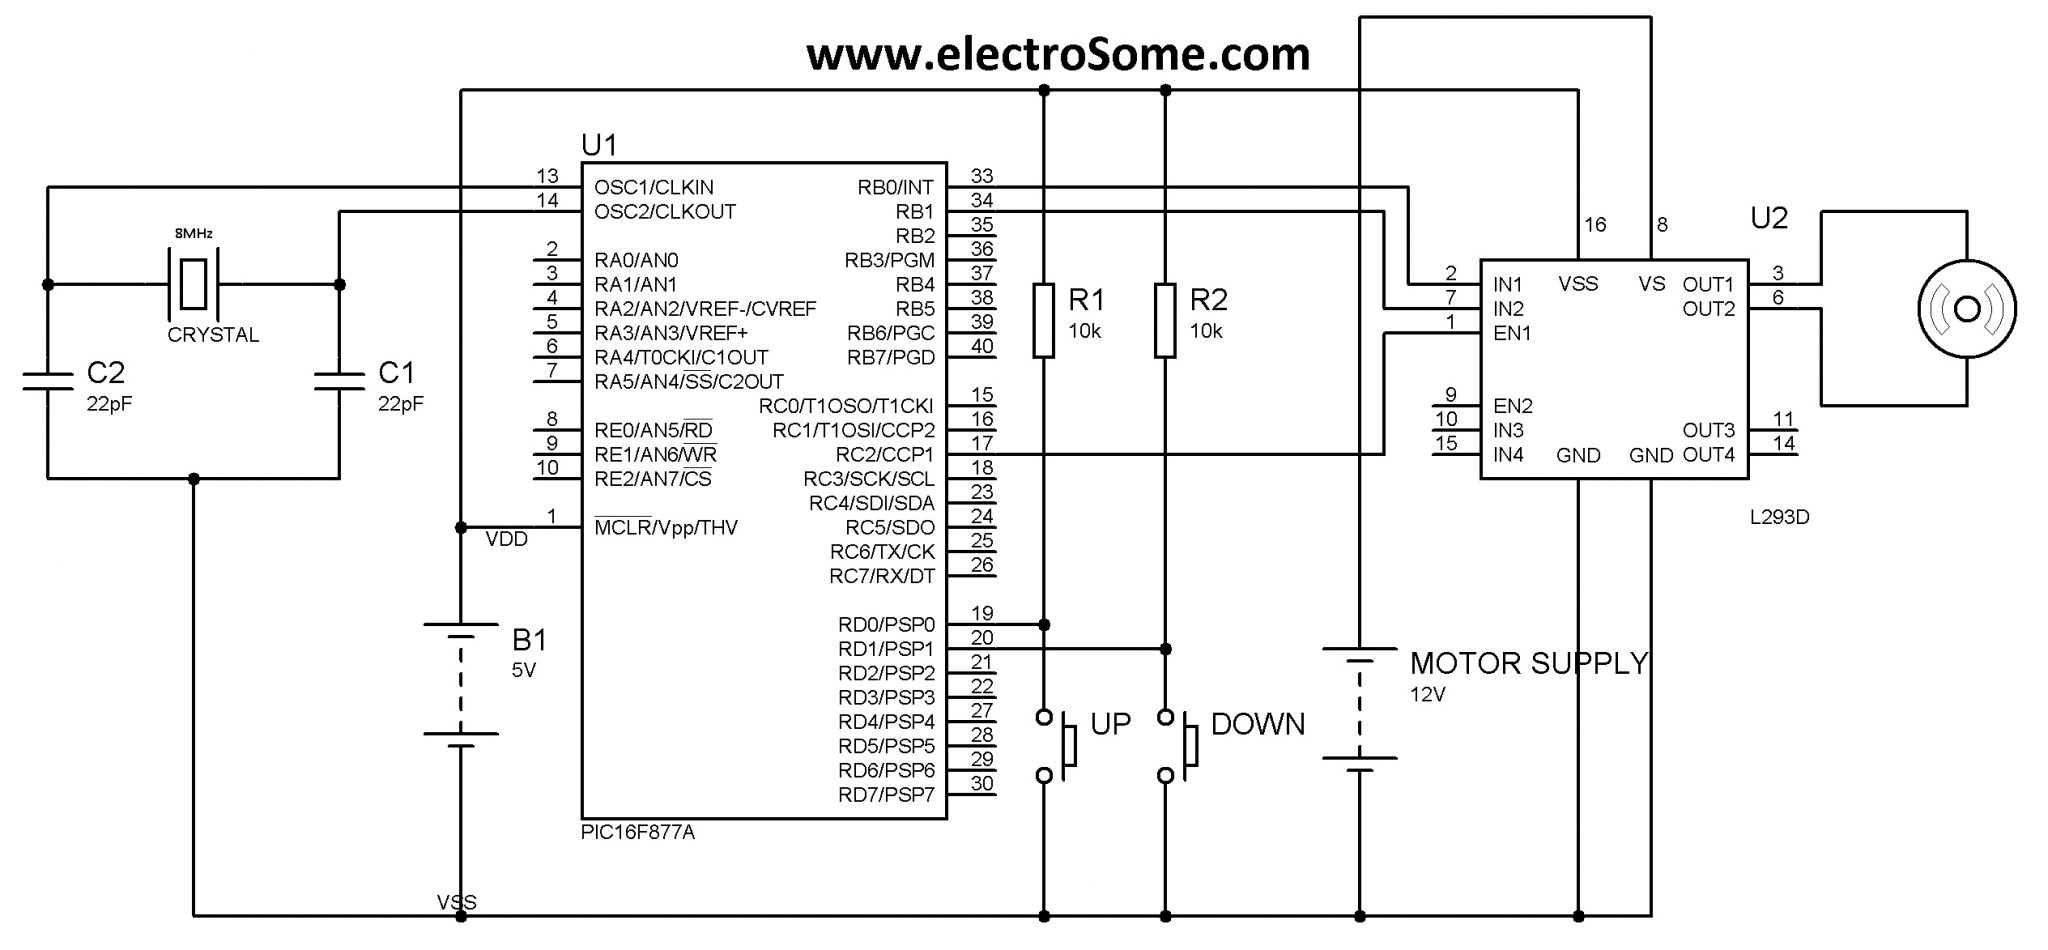 Dc Motor Speed Control Using Pwm With Pic Microcontroller Mikroc Troubleshooting Electric Circuits Wiring Simulation